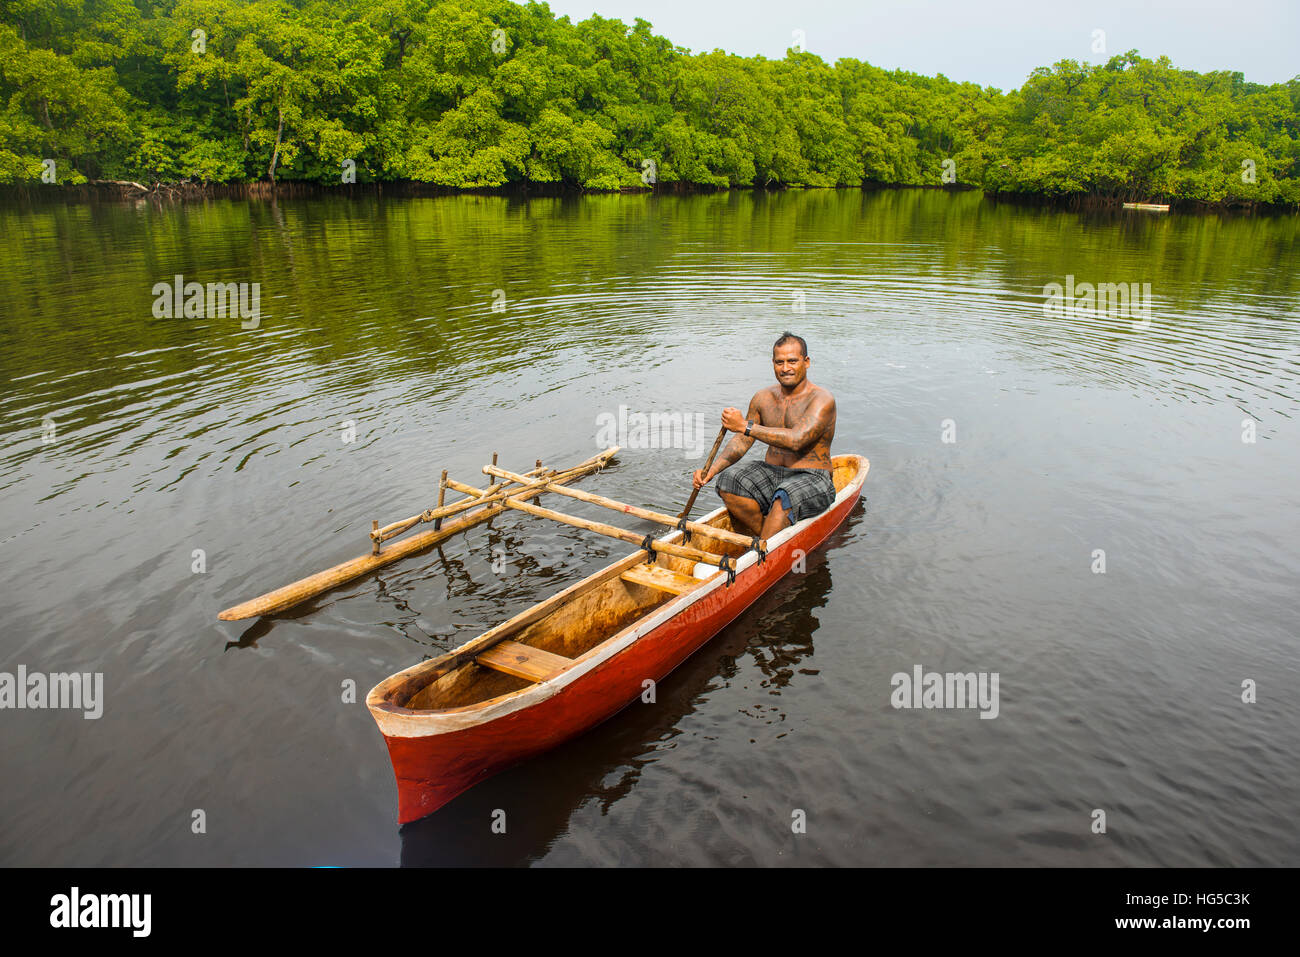 Man in his dugout canoe, Kosrae, Federated States of Micronesia, South Pacific Stock Photo